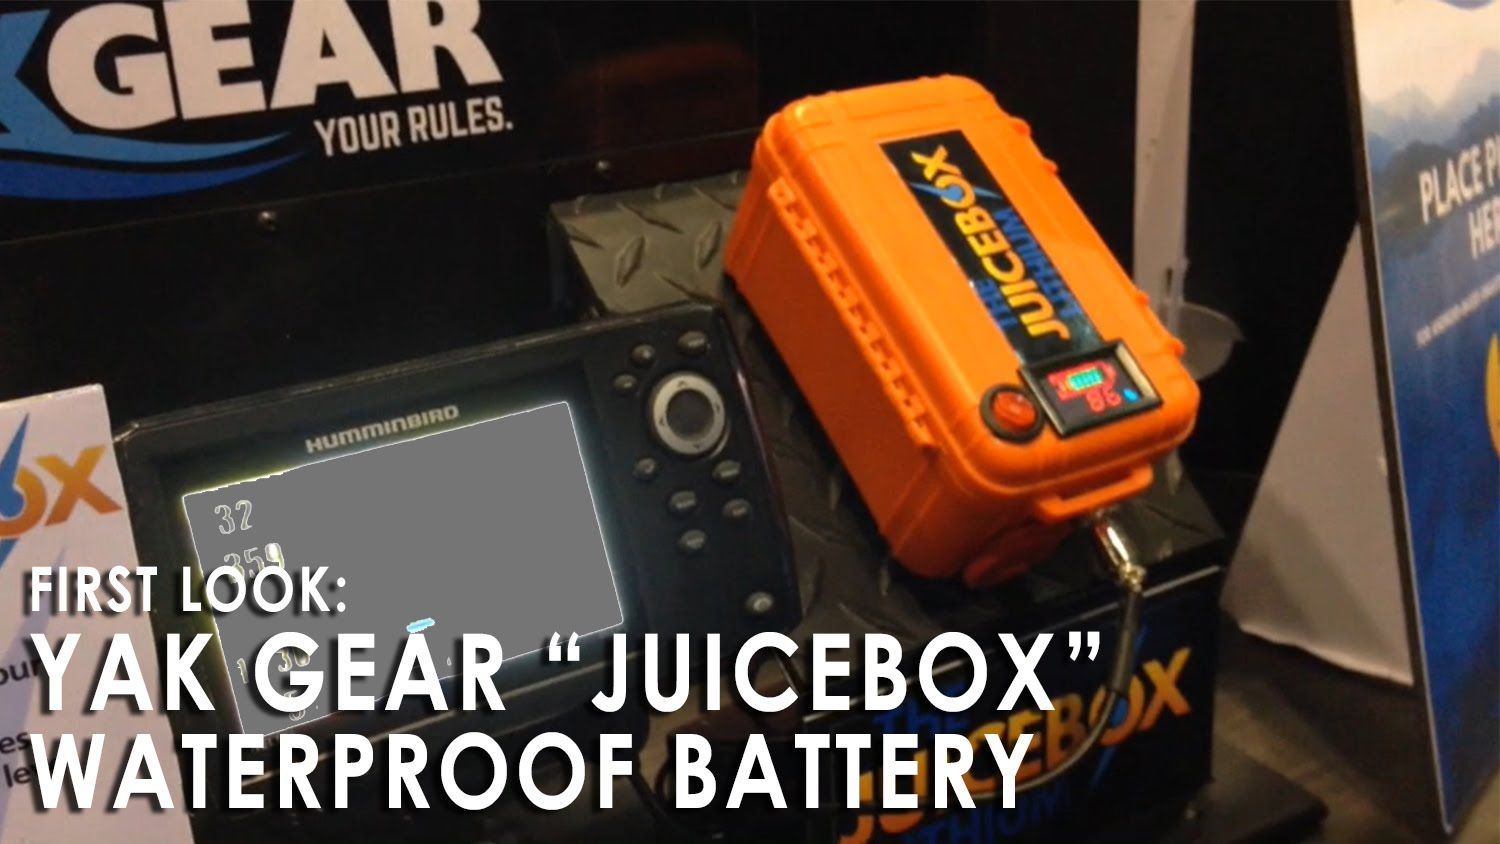 New Kayak Battery Box By Yak Gear This Thing Is Outstanding